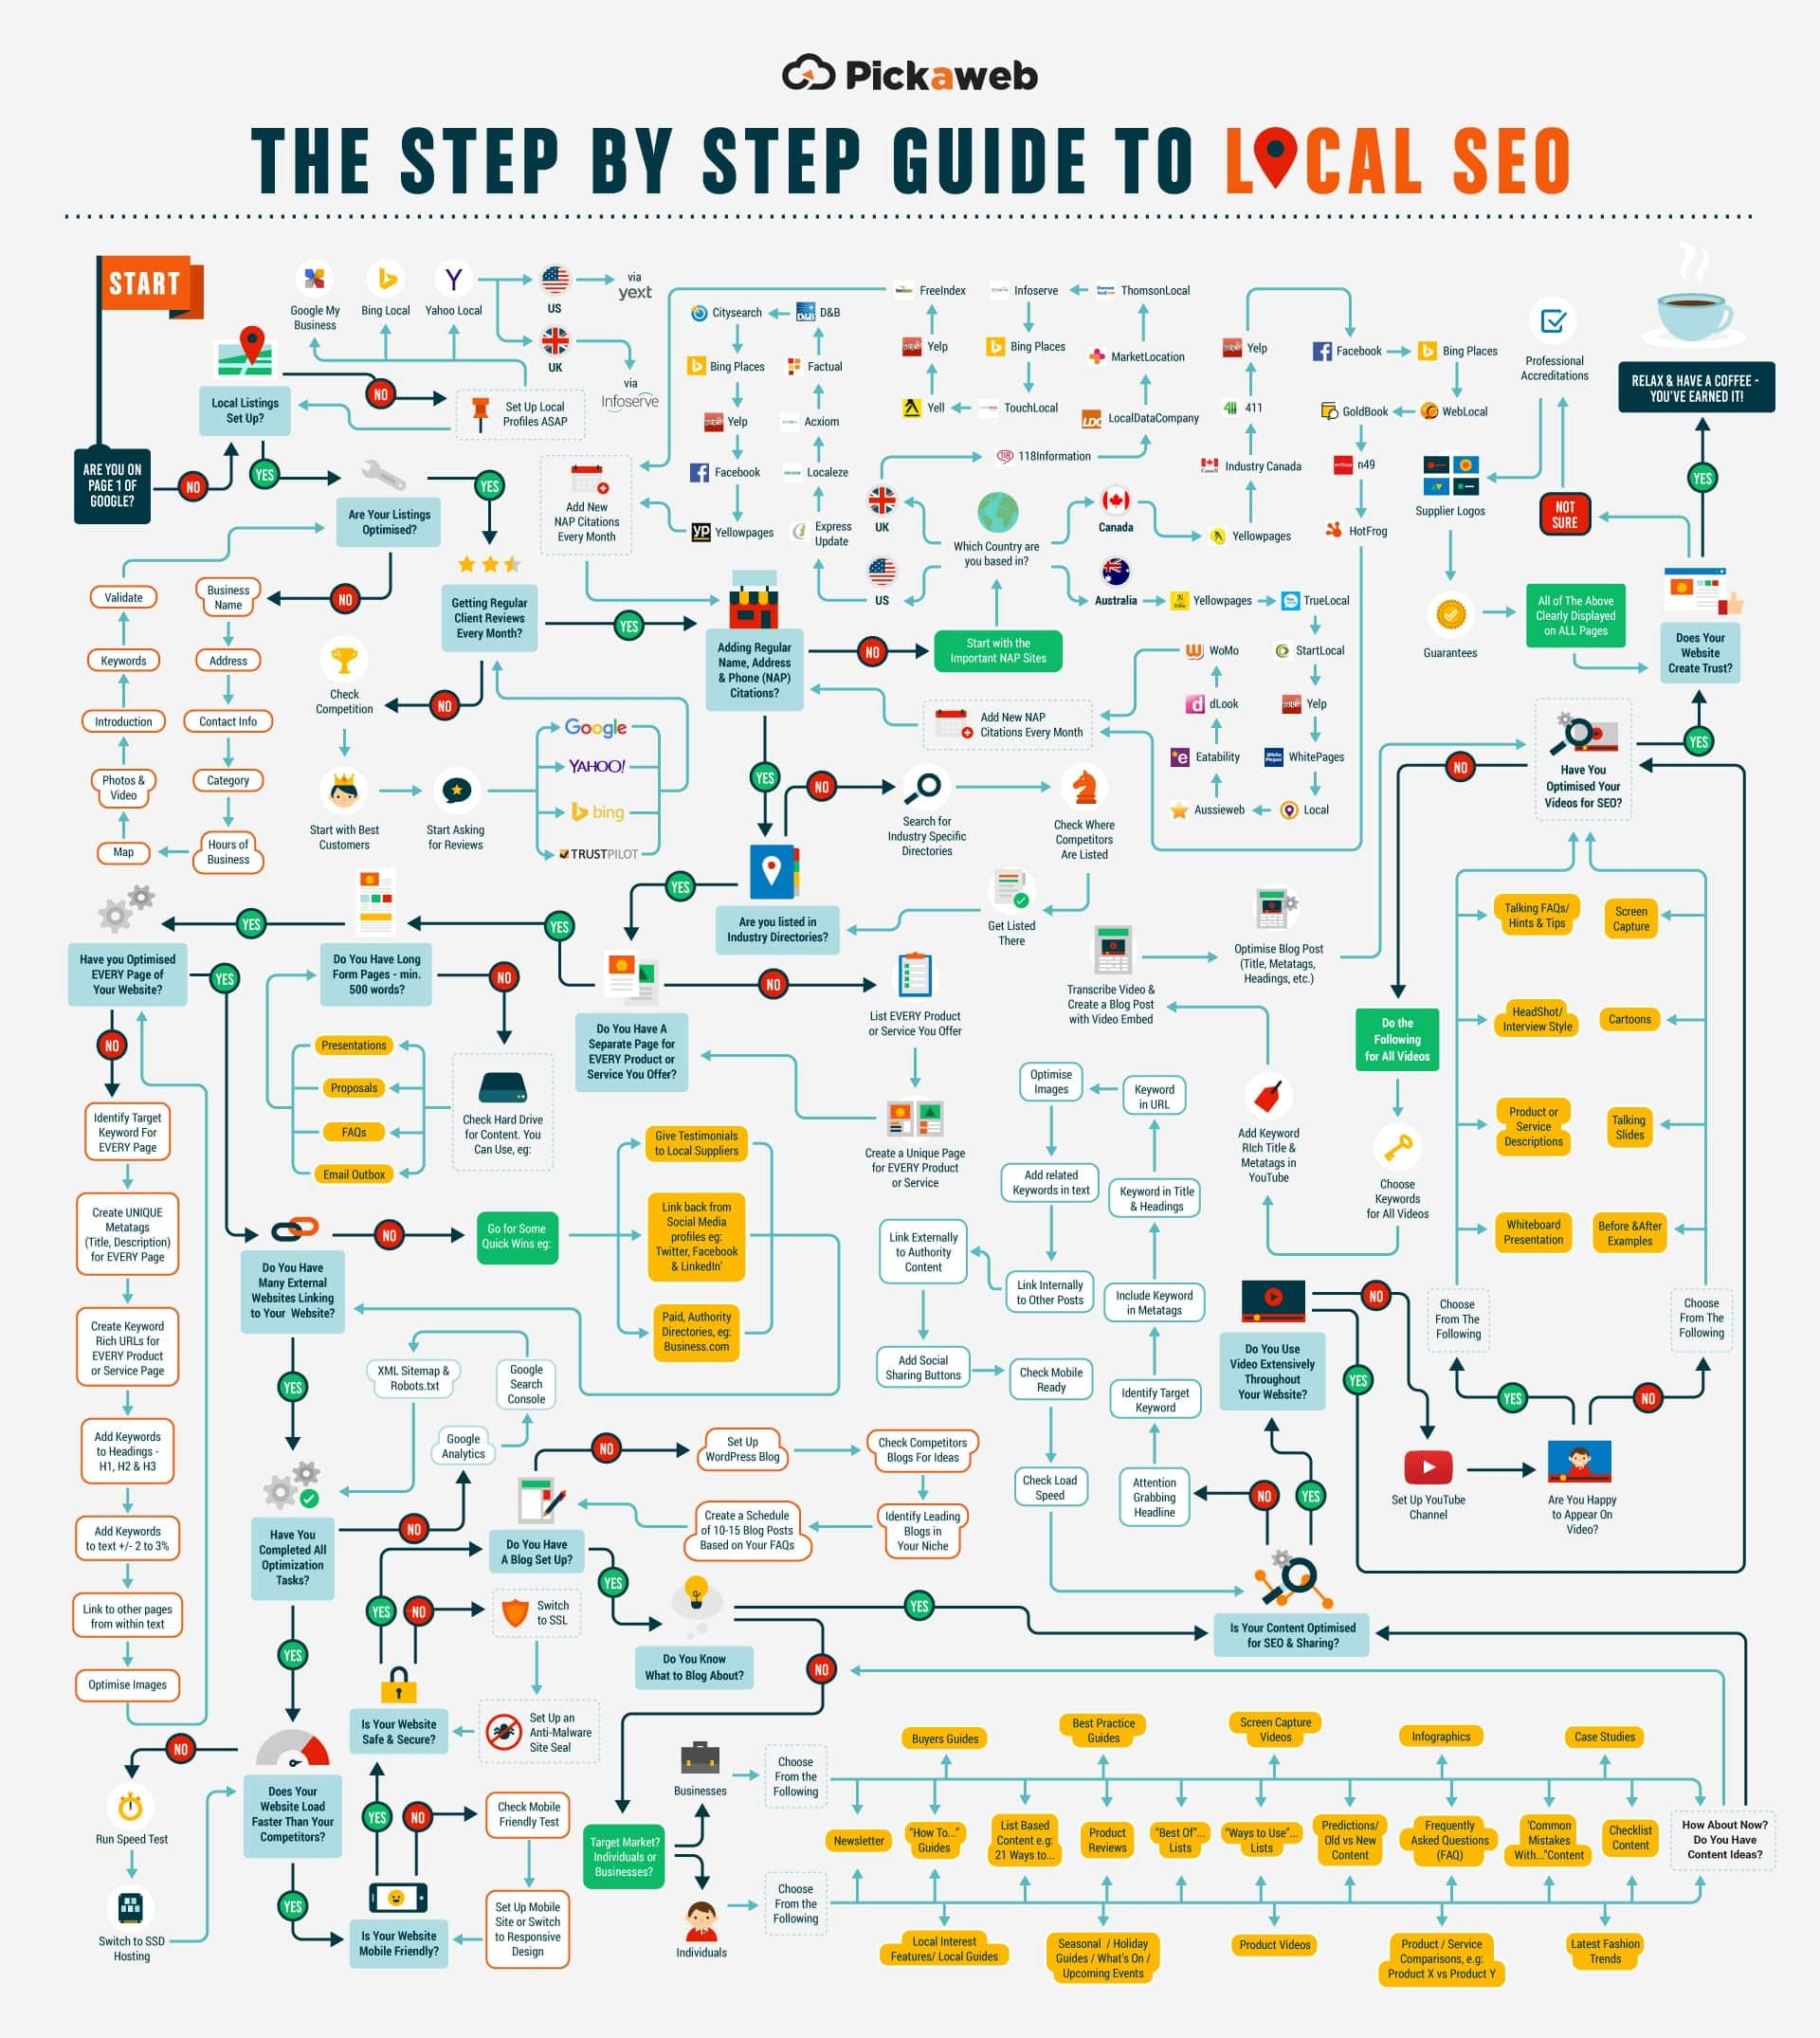 The Definitive Guide To Local SEO - An Infographic from Pickaweb